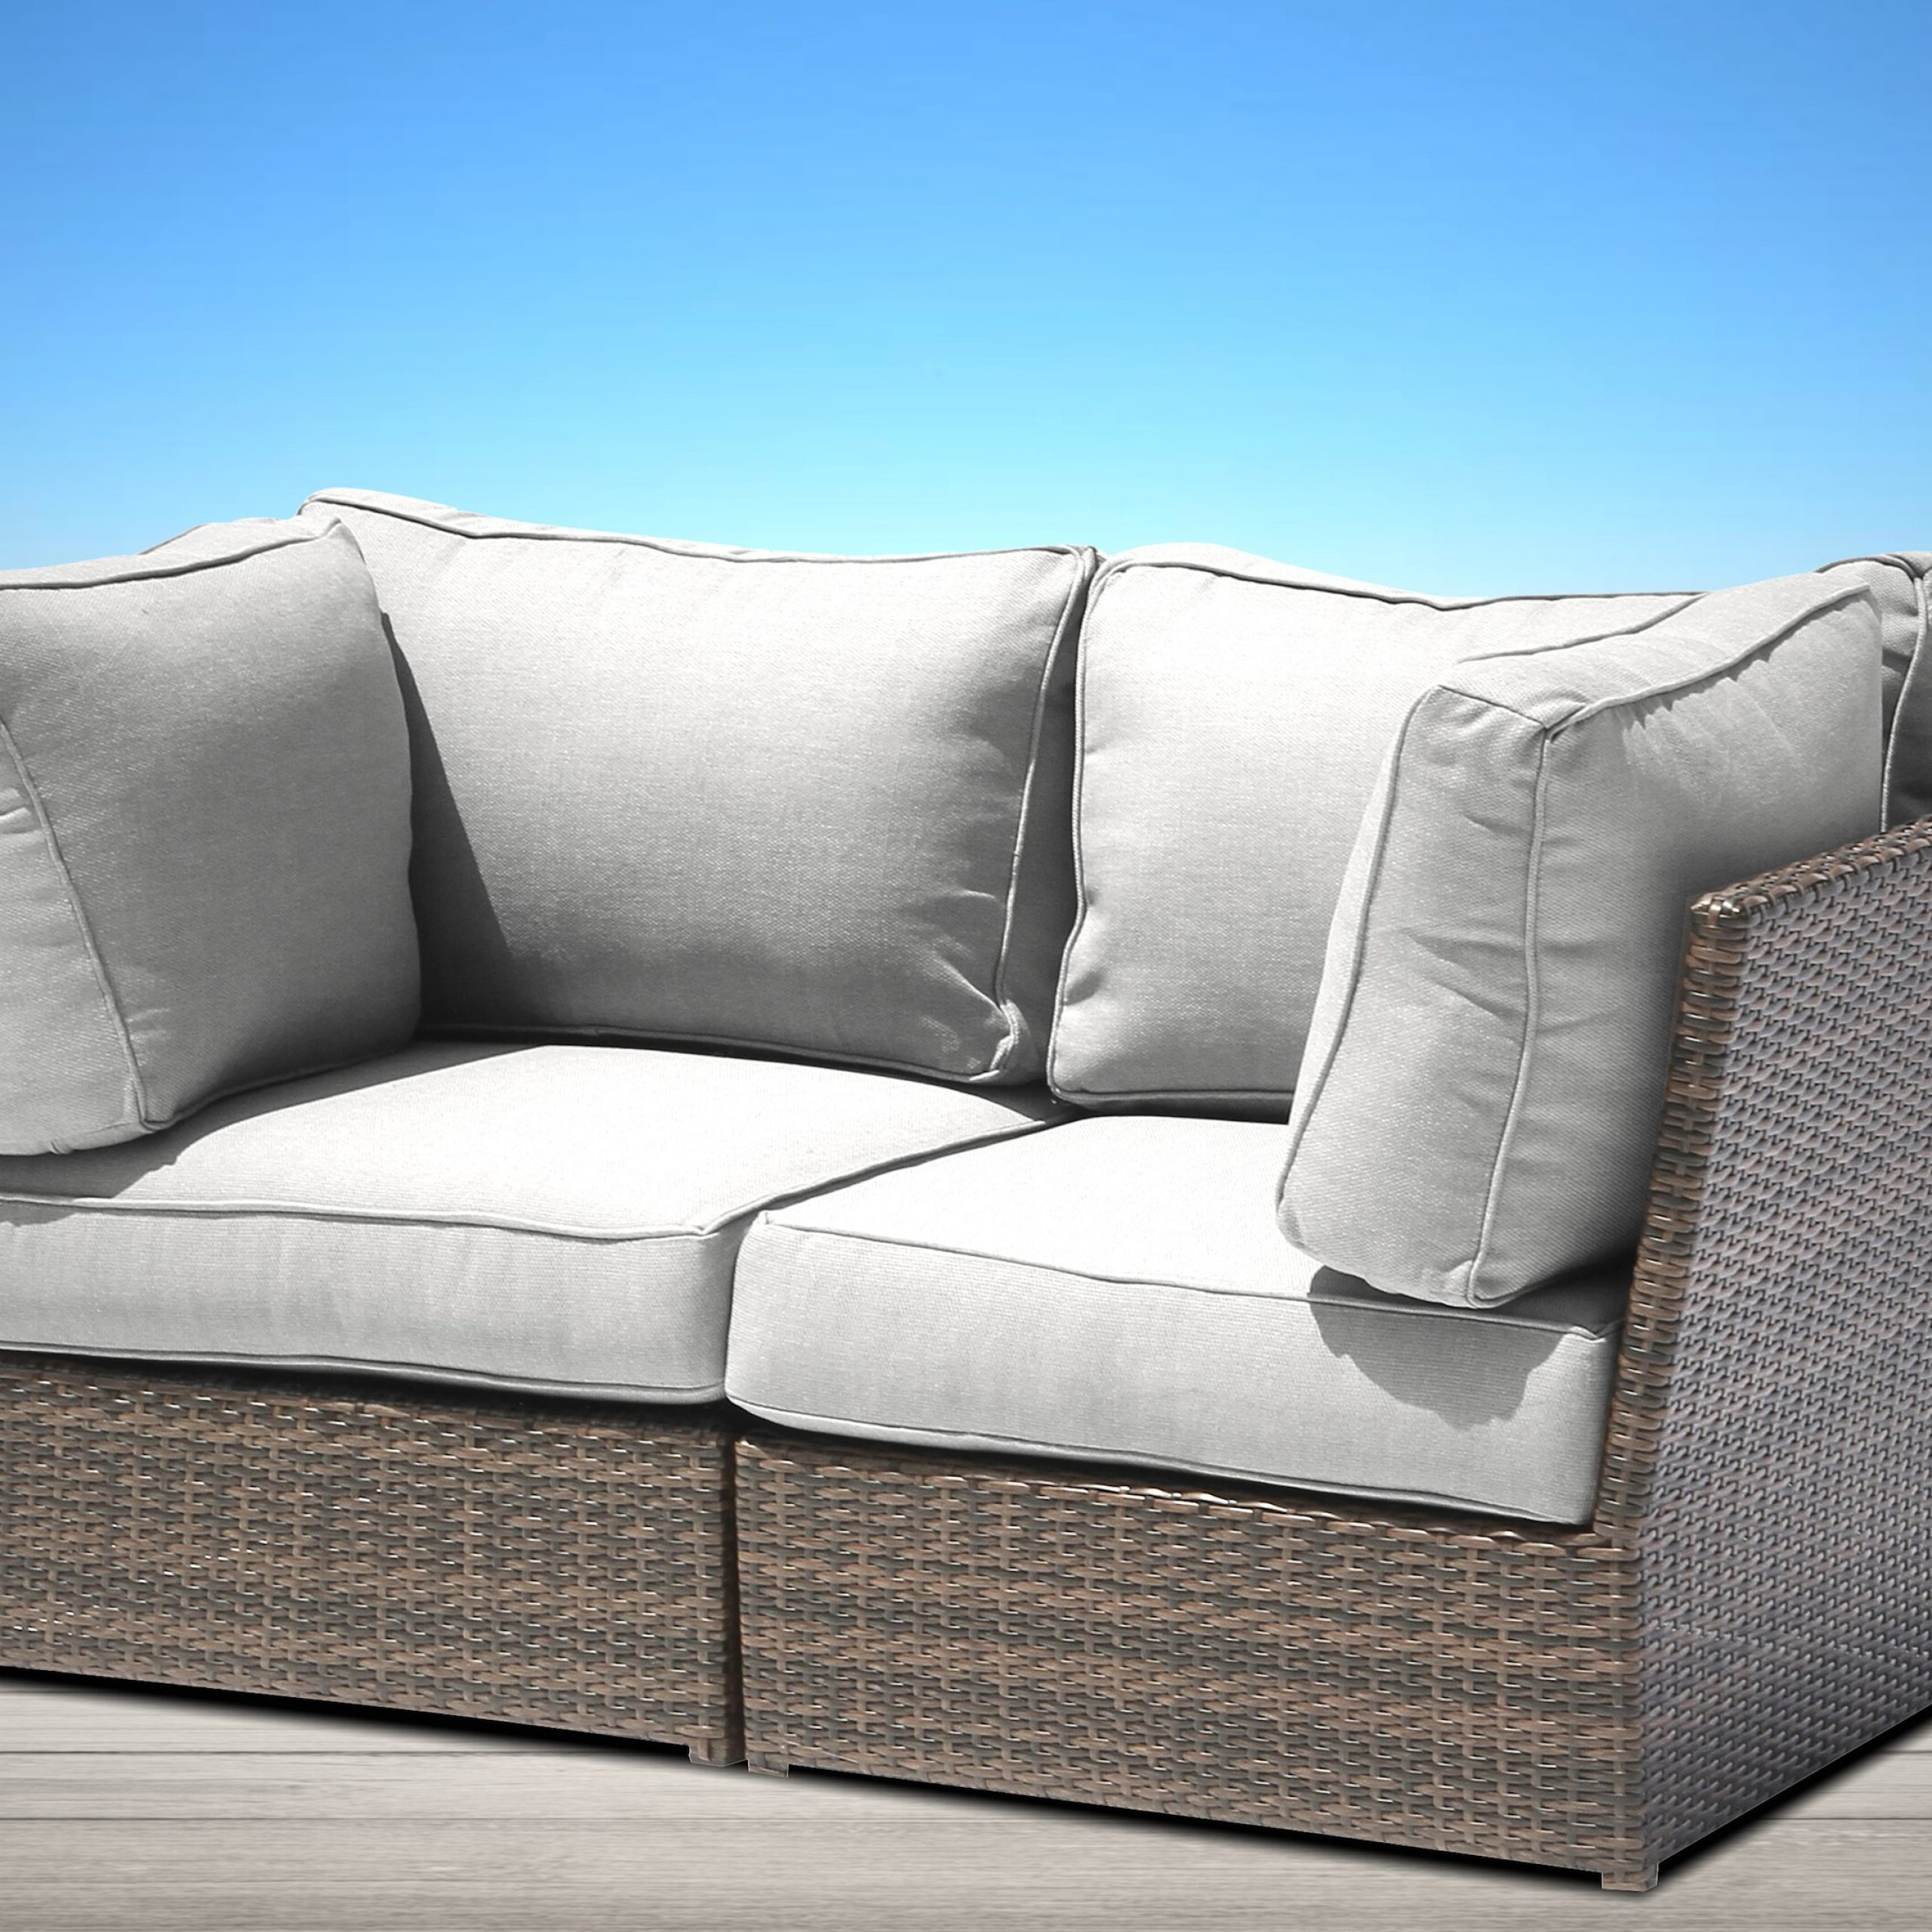 Most Popular Simmerman Loveseat With Cushions Pertaining To Oceanside Outdoor Wicker Loveseats With Cushions (View 10 of 25)